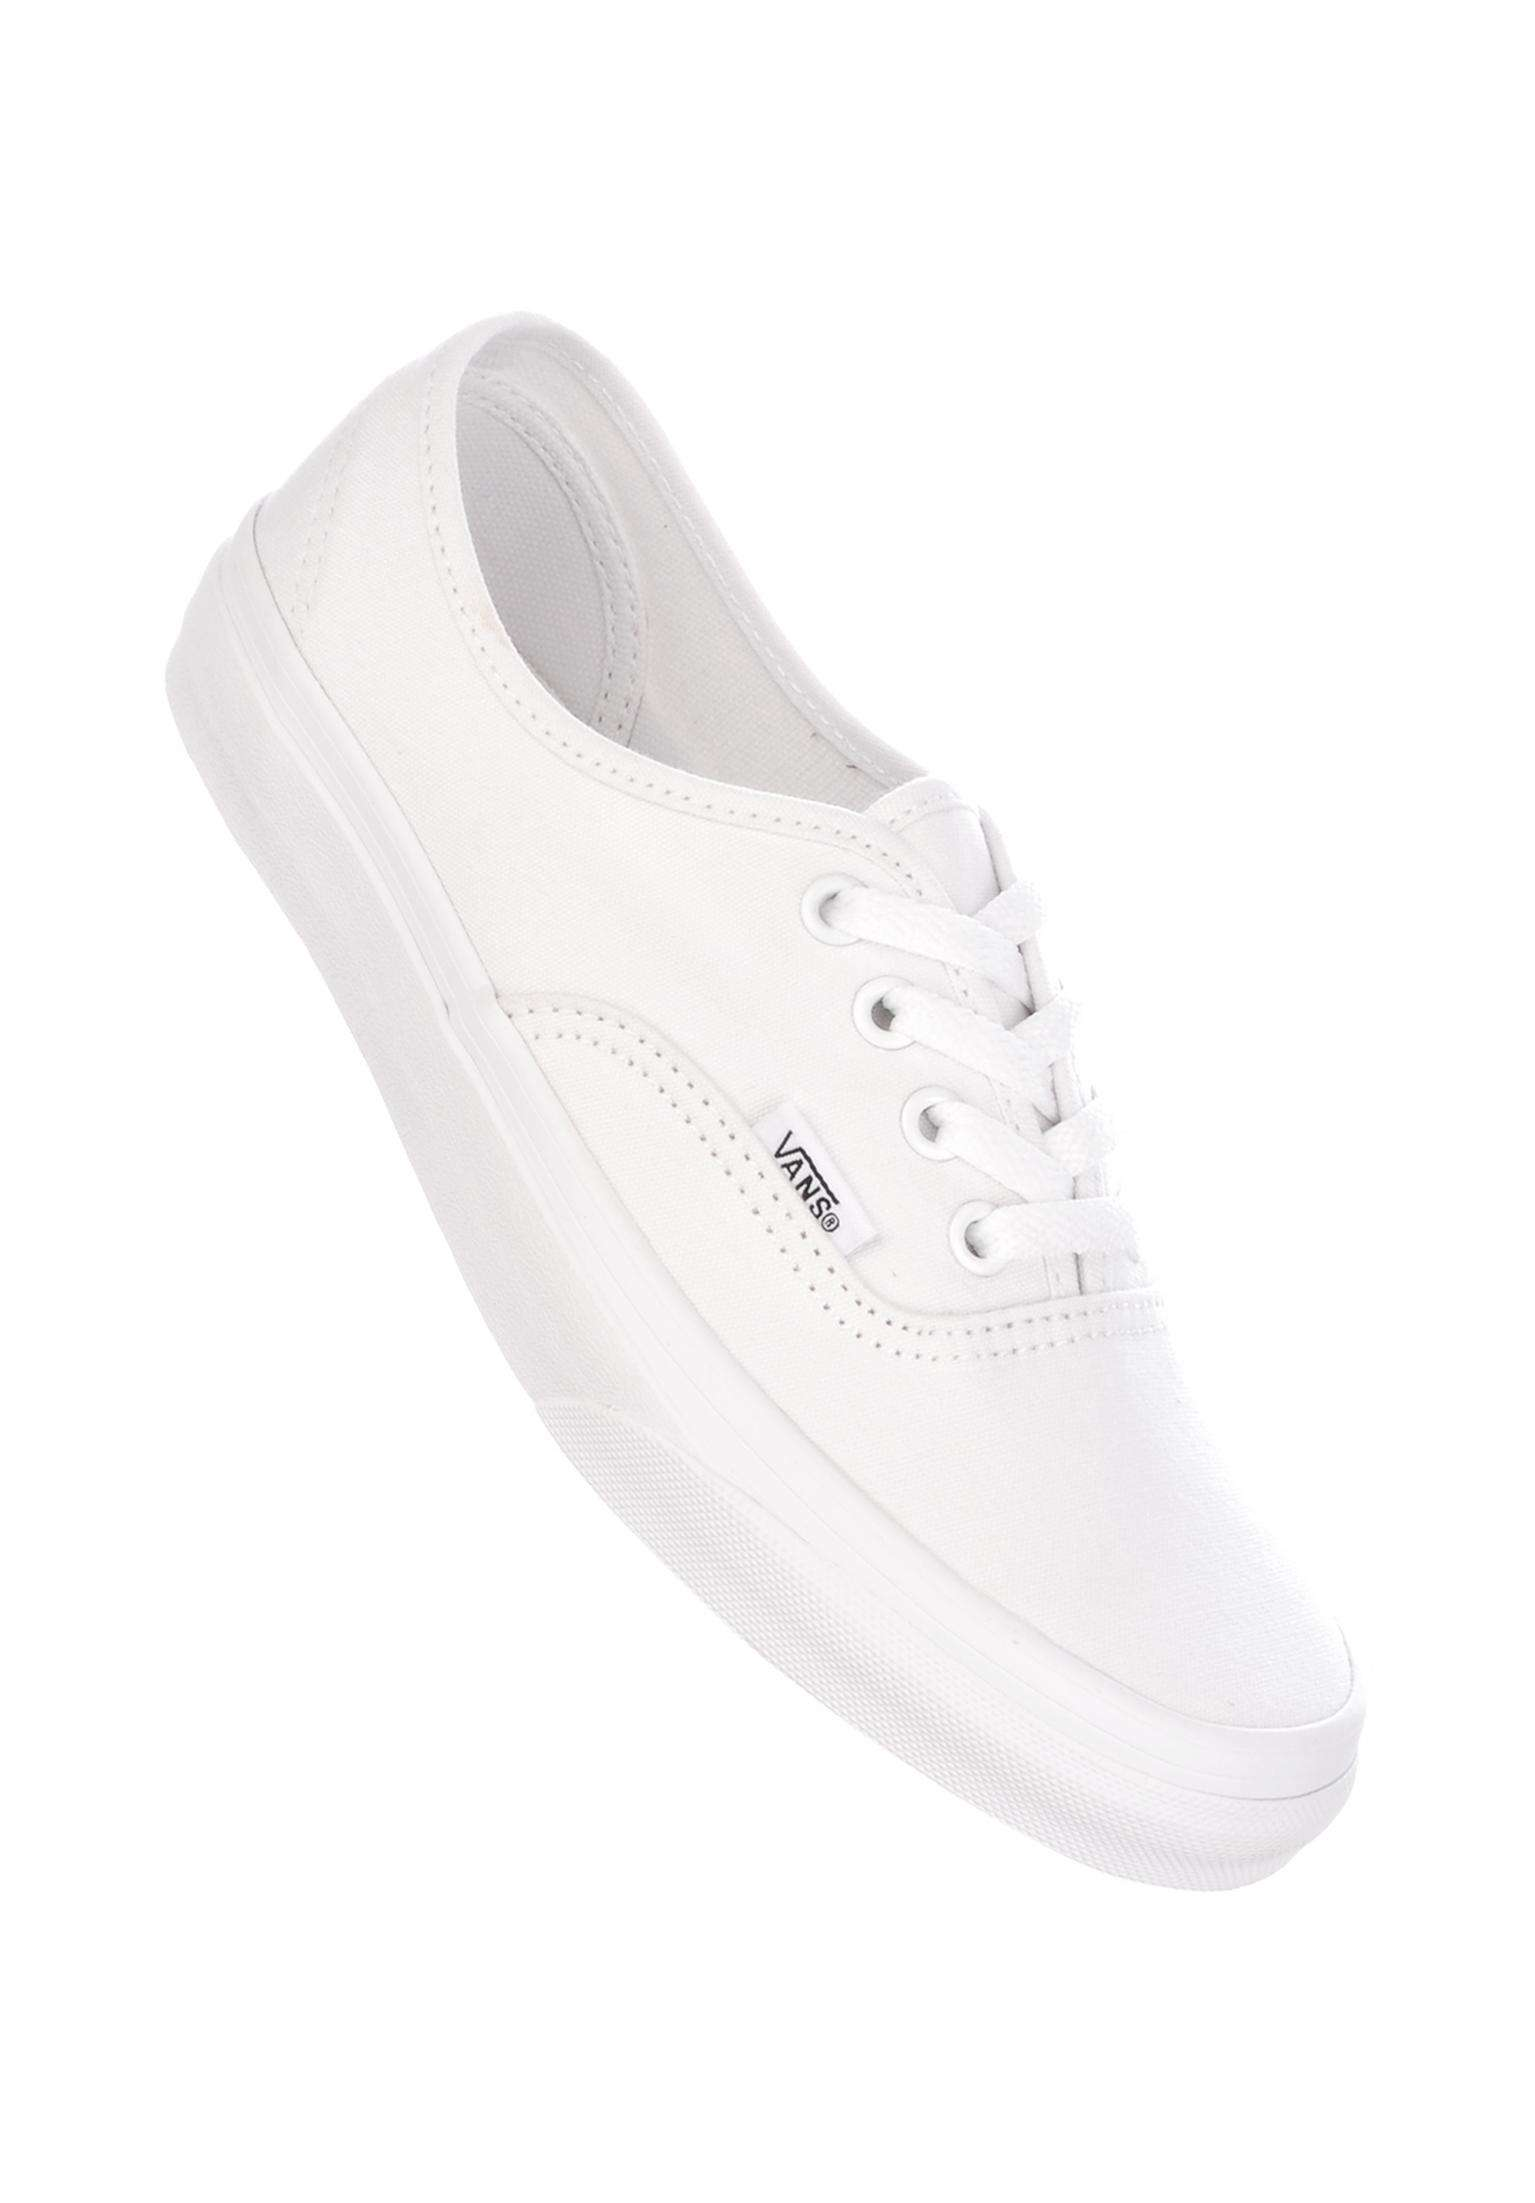 c3dd9d92a7632c Authentic Classic Vans All Shoes in truewhite for Women